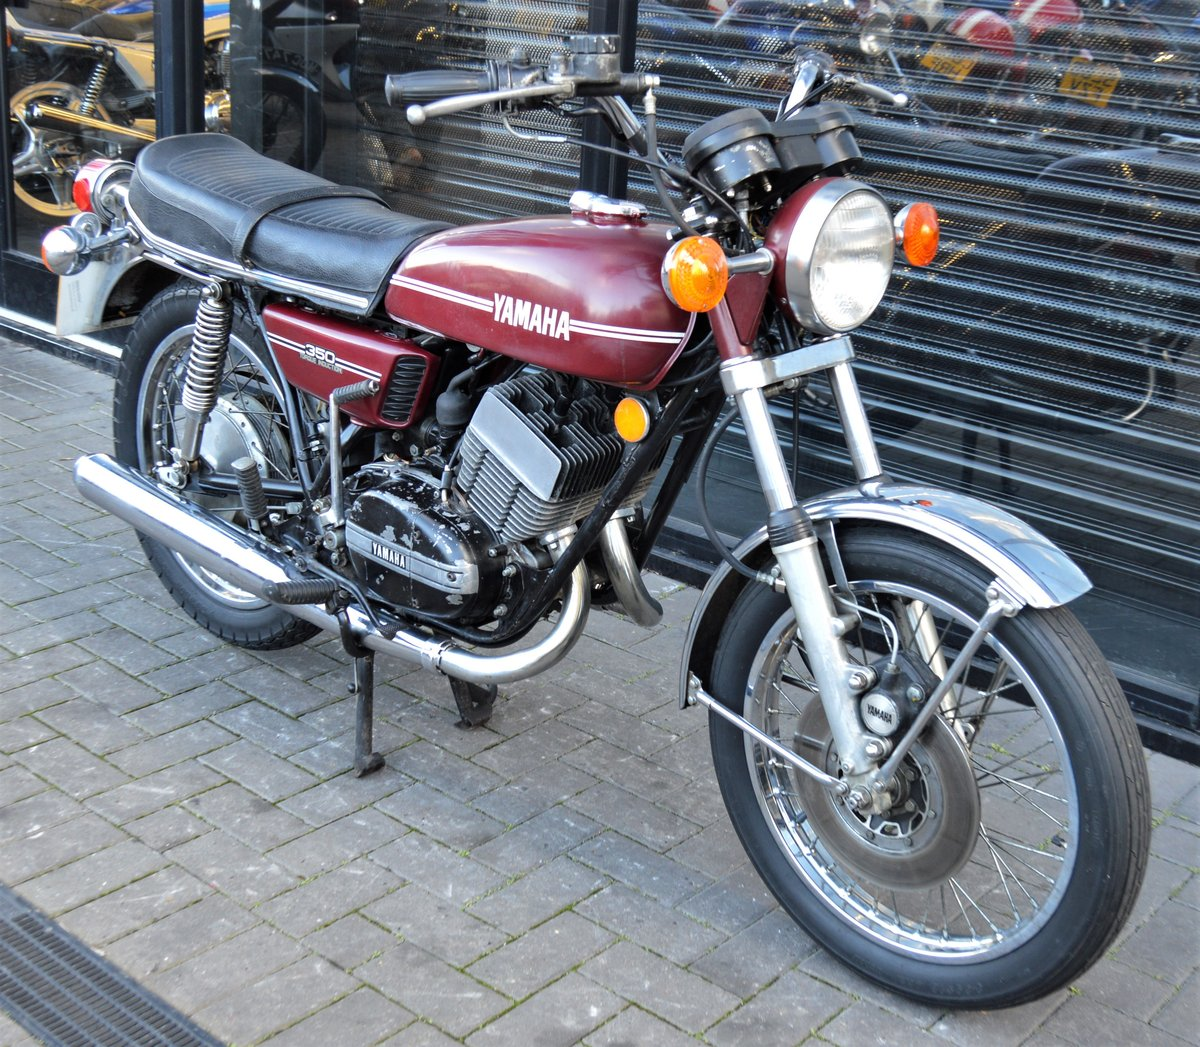 1974 YAMAHA RD350 * MATCHING NUMBERS * UK DELIVERY For Sale (picture 1 of 6)